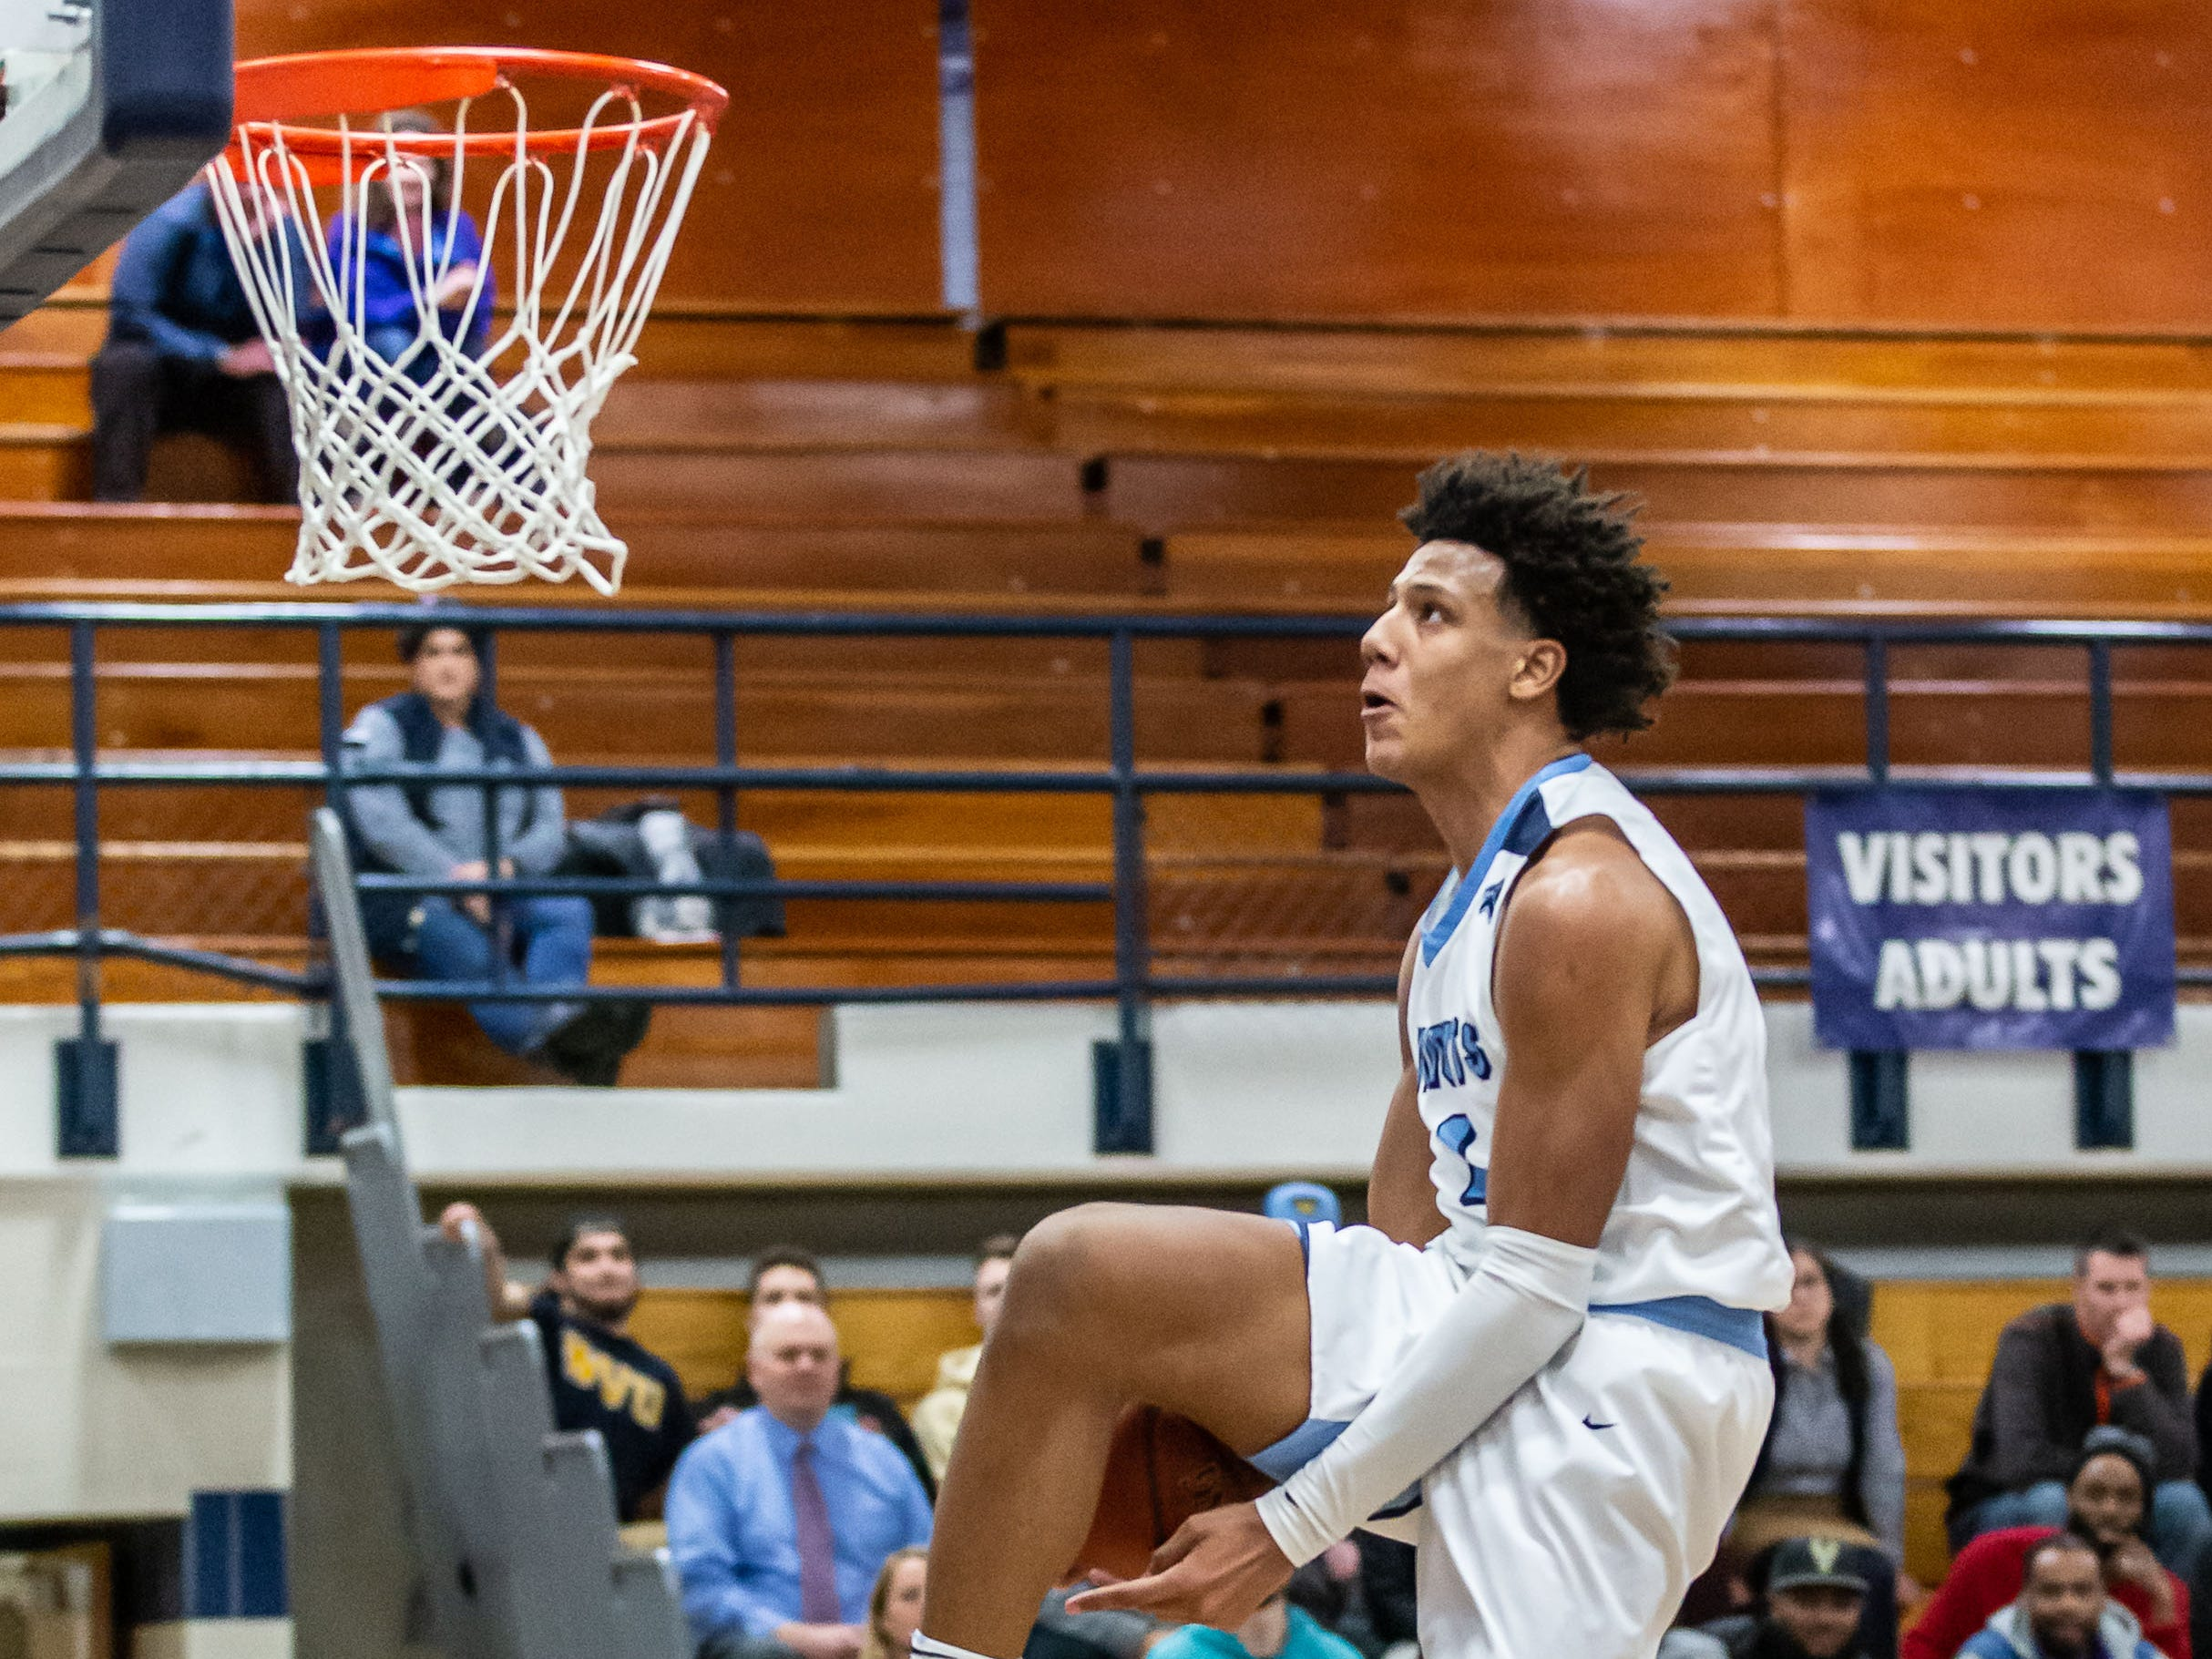 Nicolet's Jalen Johnson (1) eyes the hoop on a break-away dunk attempt at home against Whitefish Bay on Monday, Feb. 18, 2019.